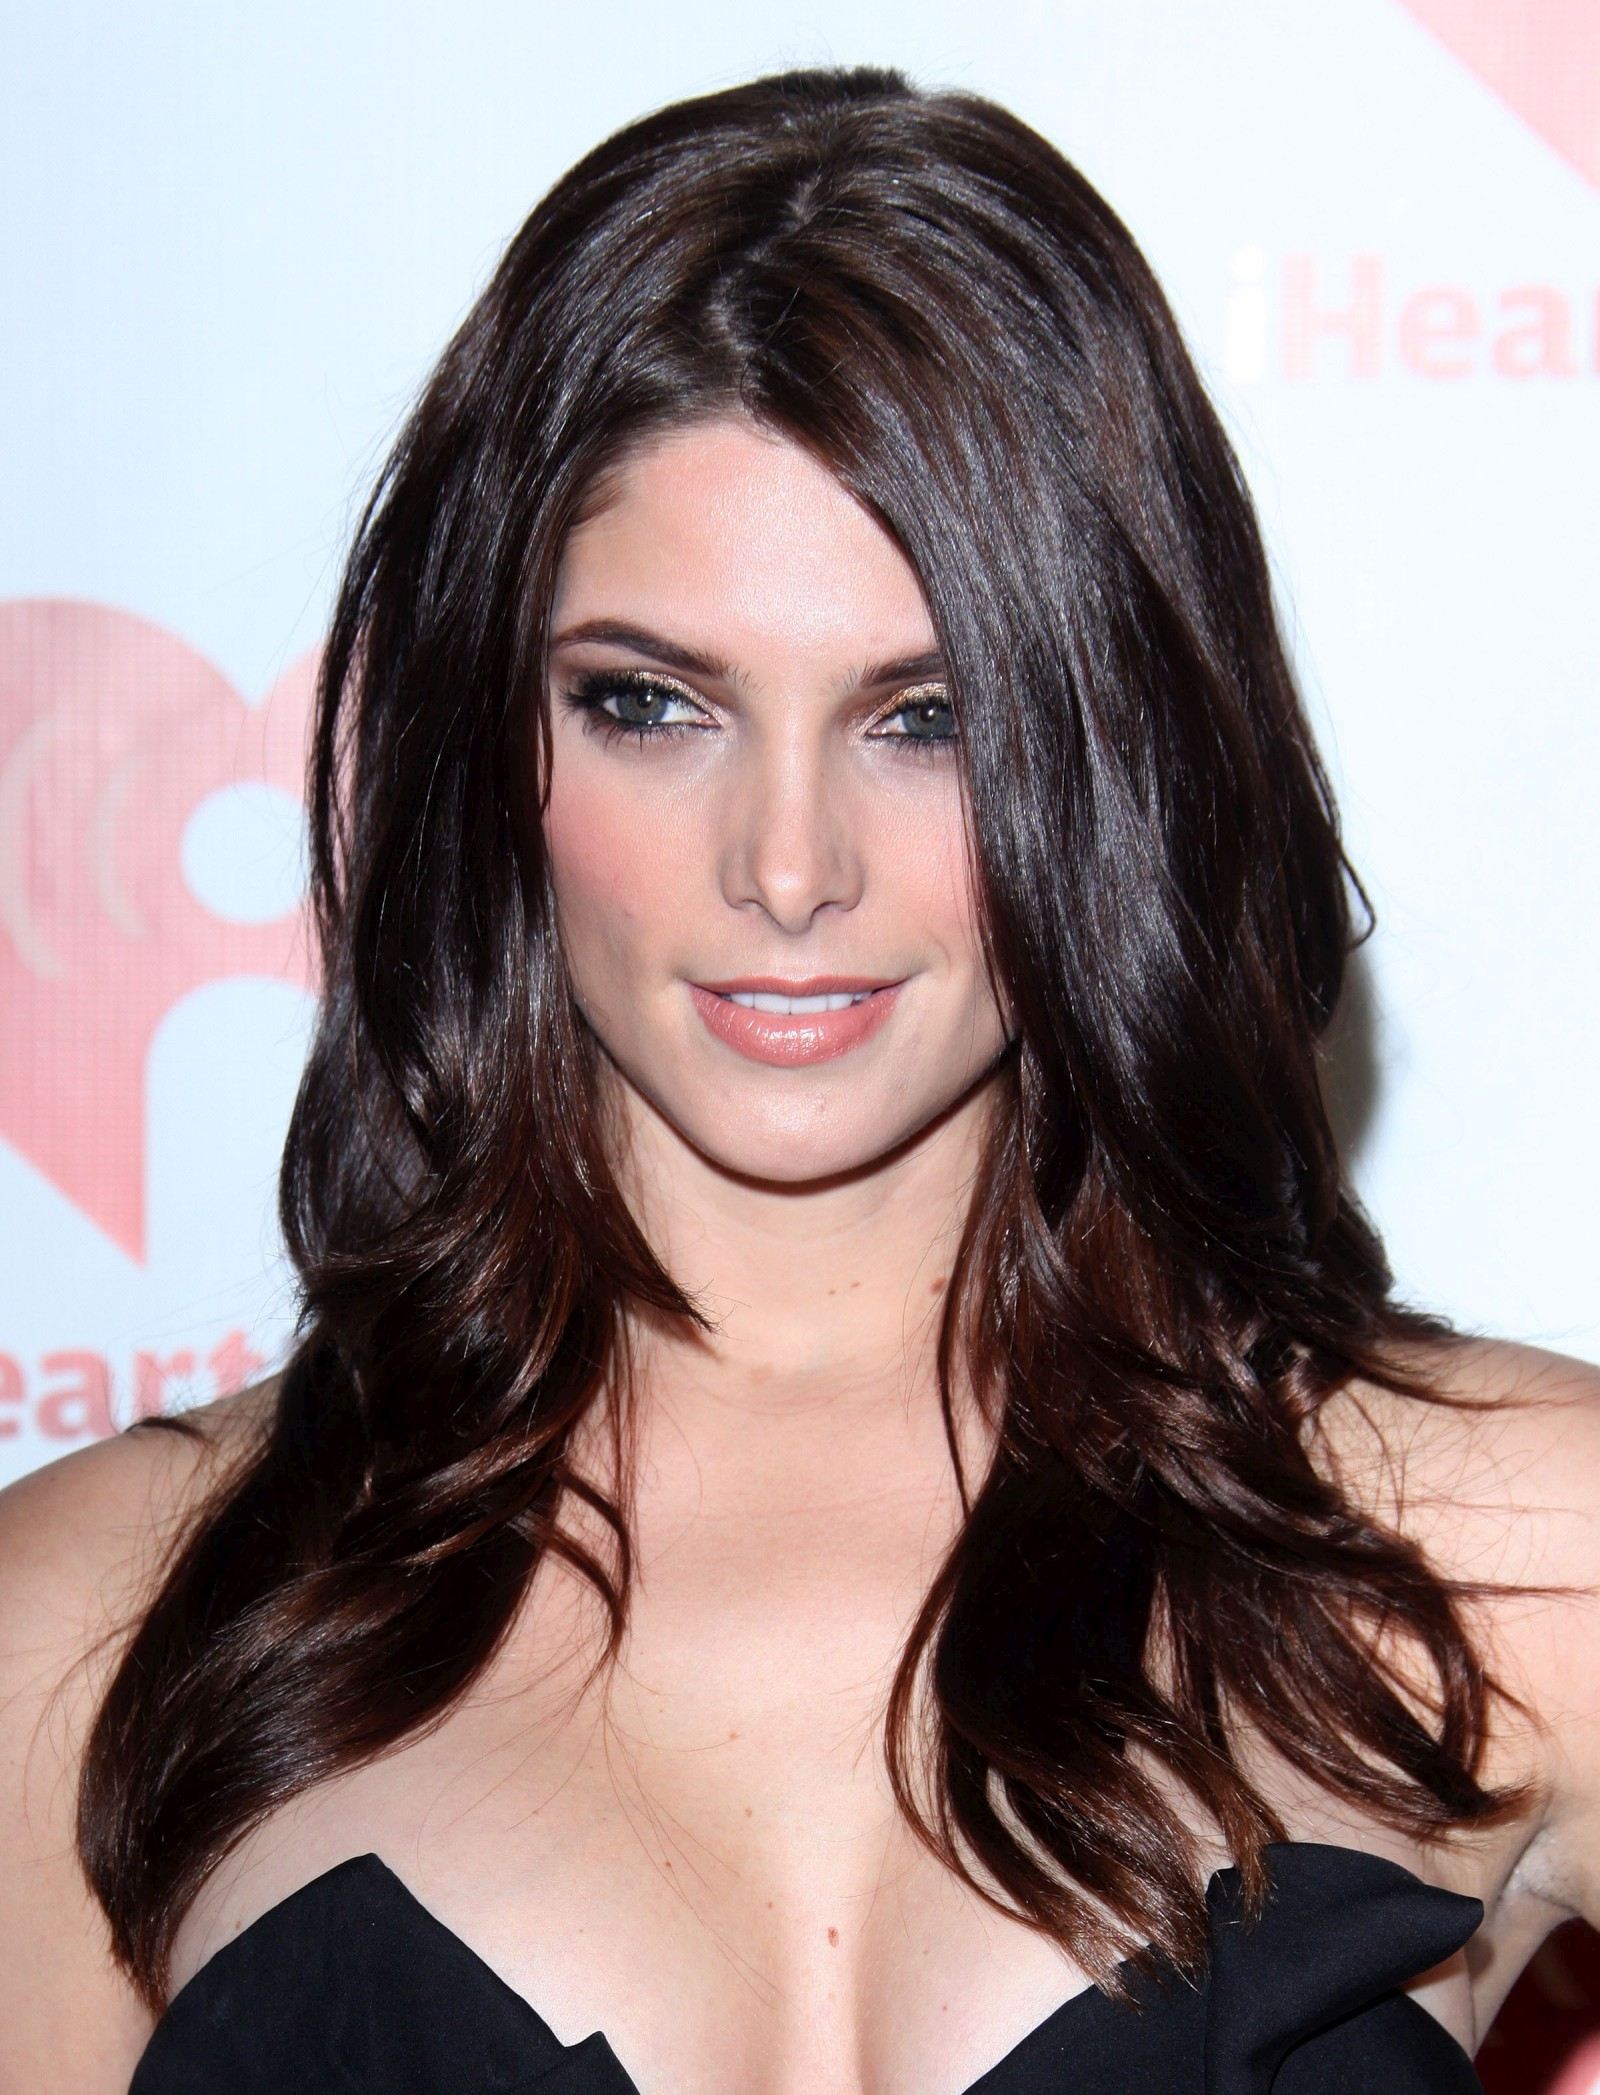 Ashley Greene Height Weight Age Bra Size Affairs Body Stats